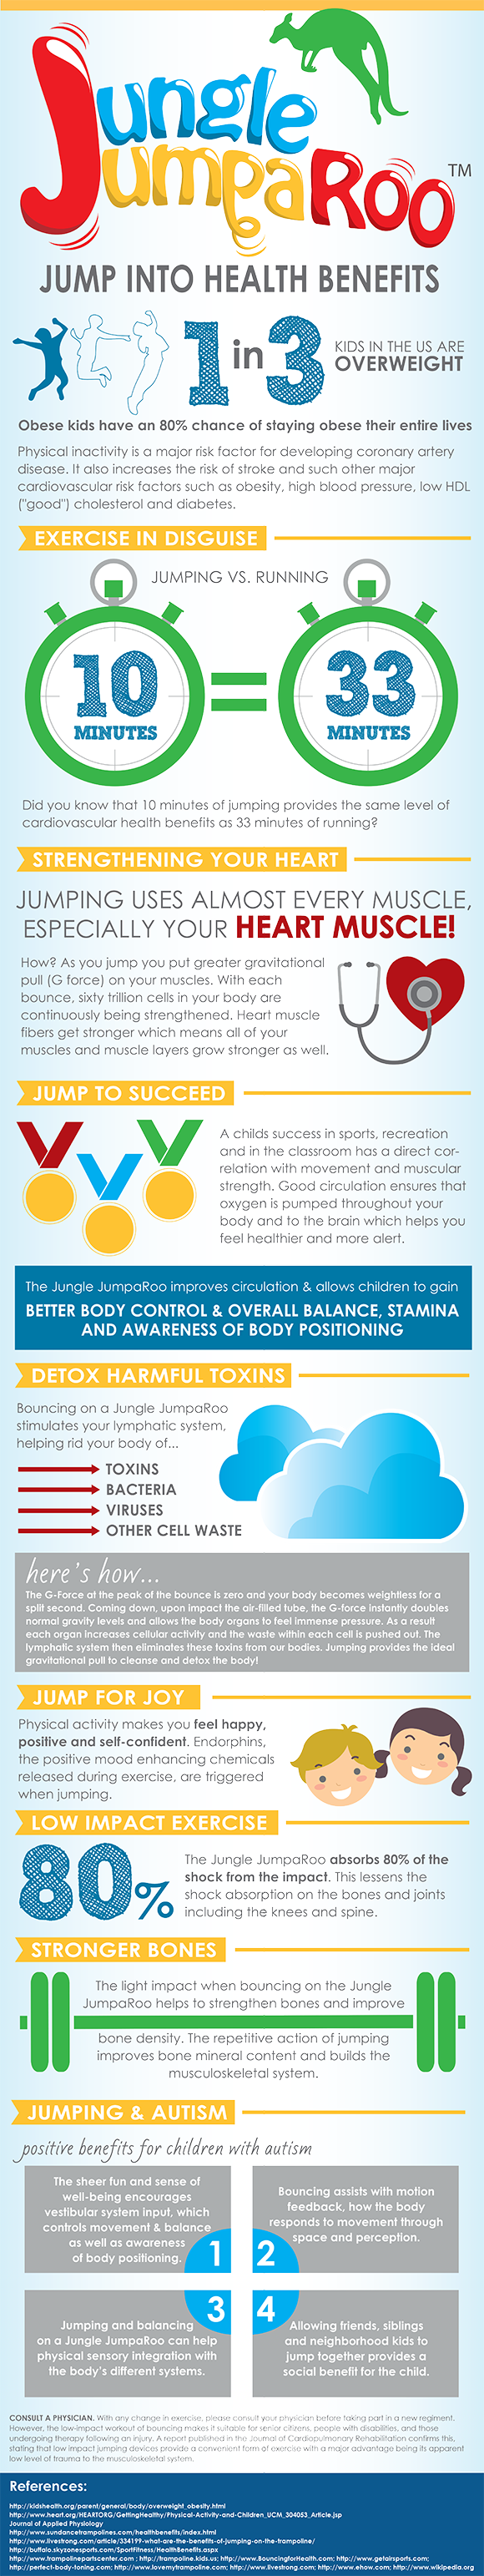 HealthBenefits-infographic-jungle-jumparoo.png